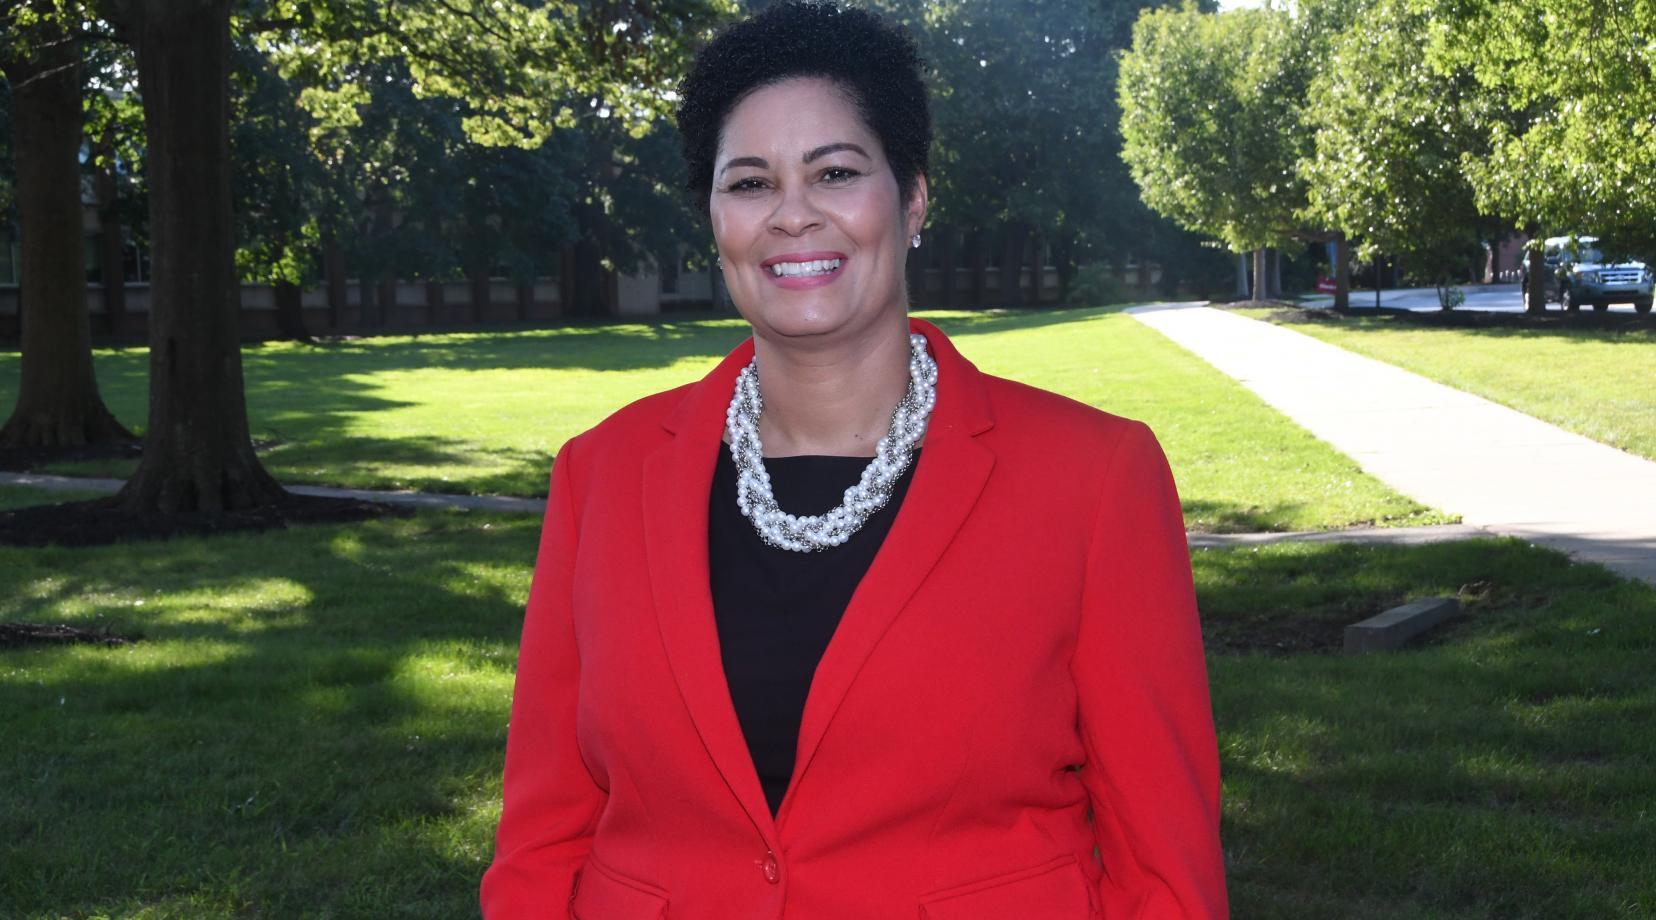 <p>Jackie Griffith will serve as DSU's primary liaison with elective and administrative officials at the local, state and federal levels as well as with community partnerships and contacts.</p>